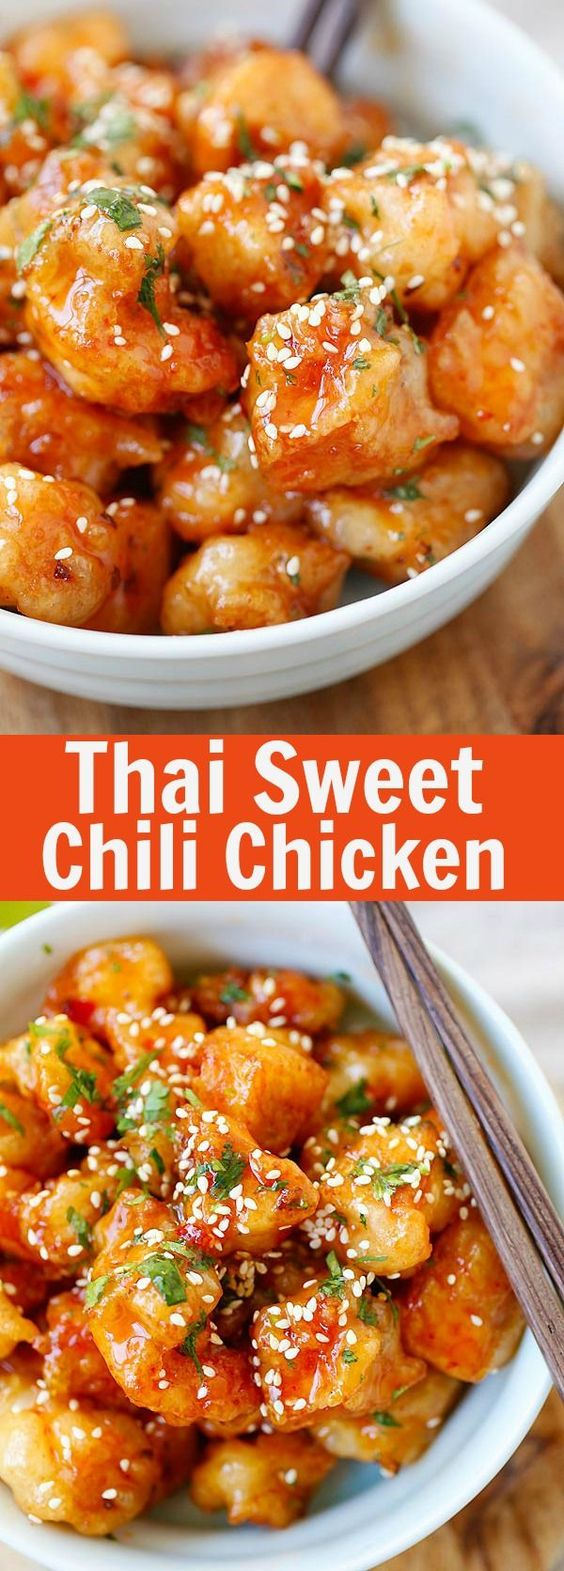 Thai Sweet Chili Chicken Recipe